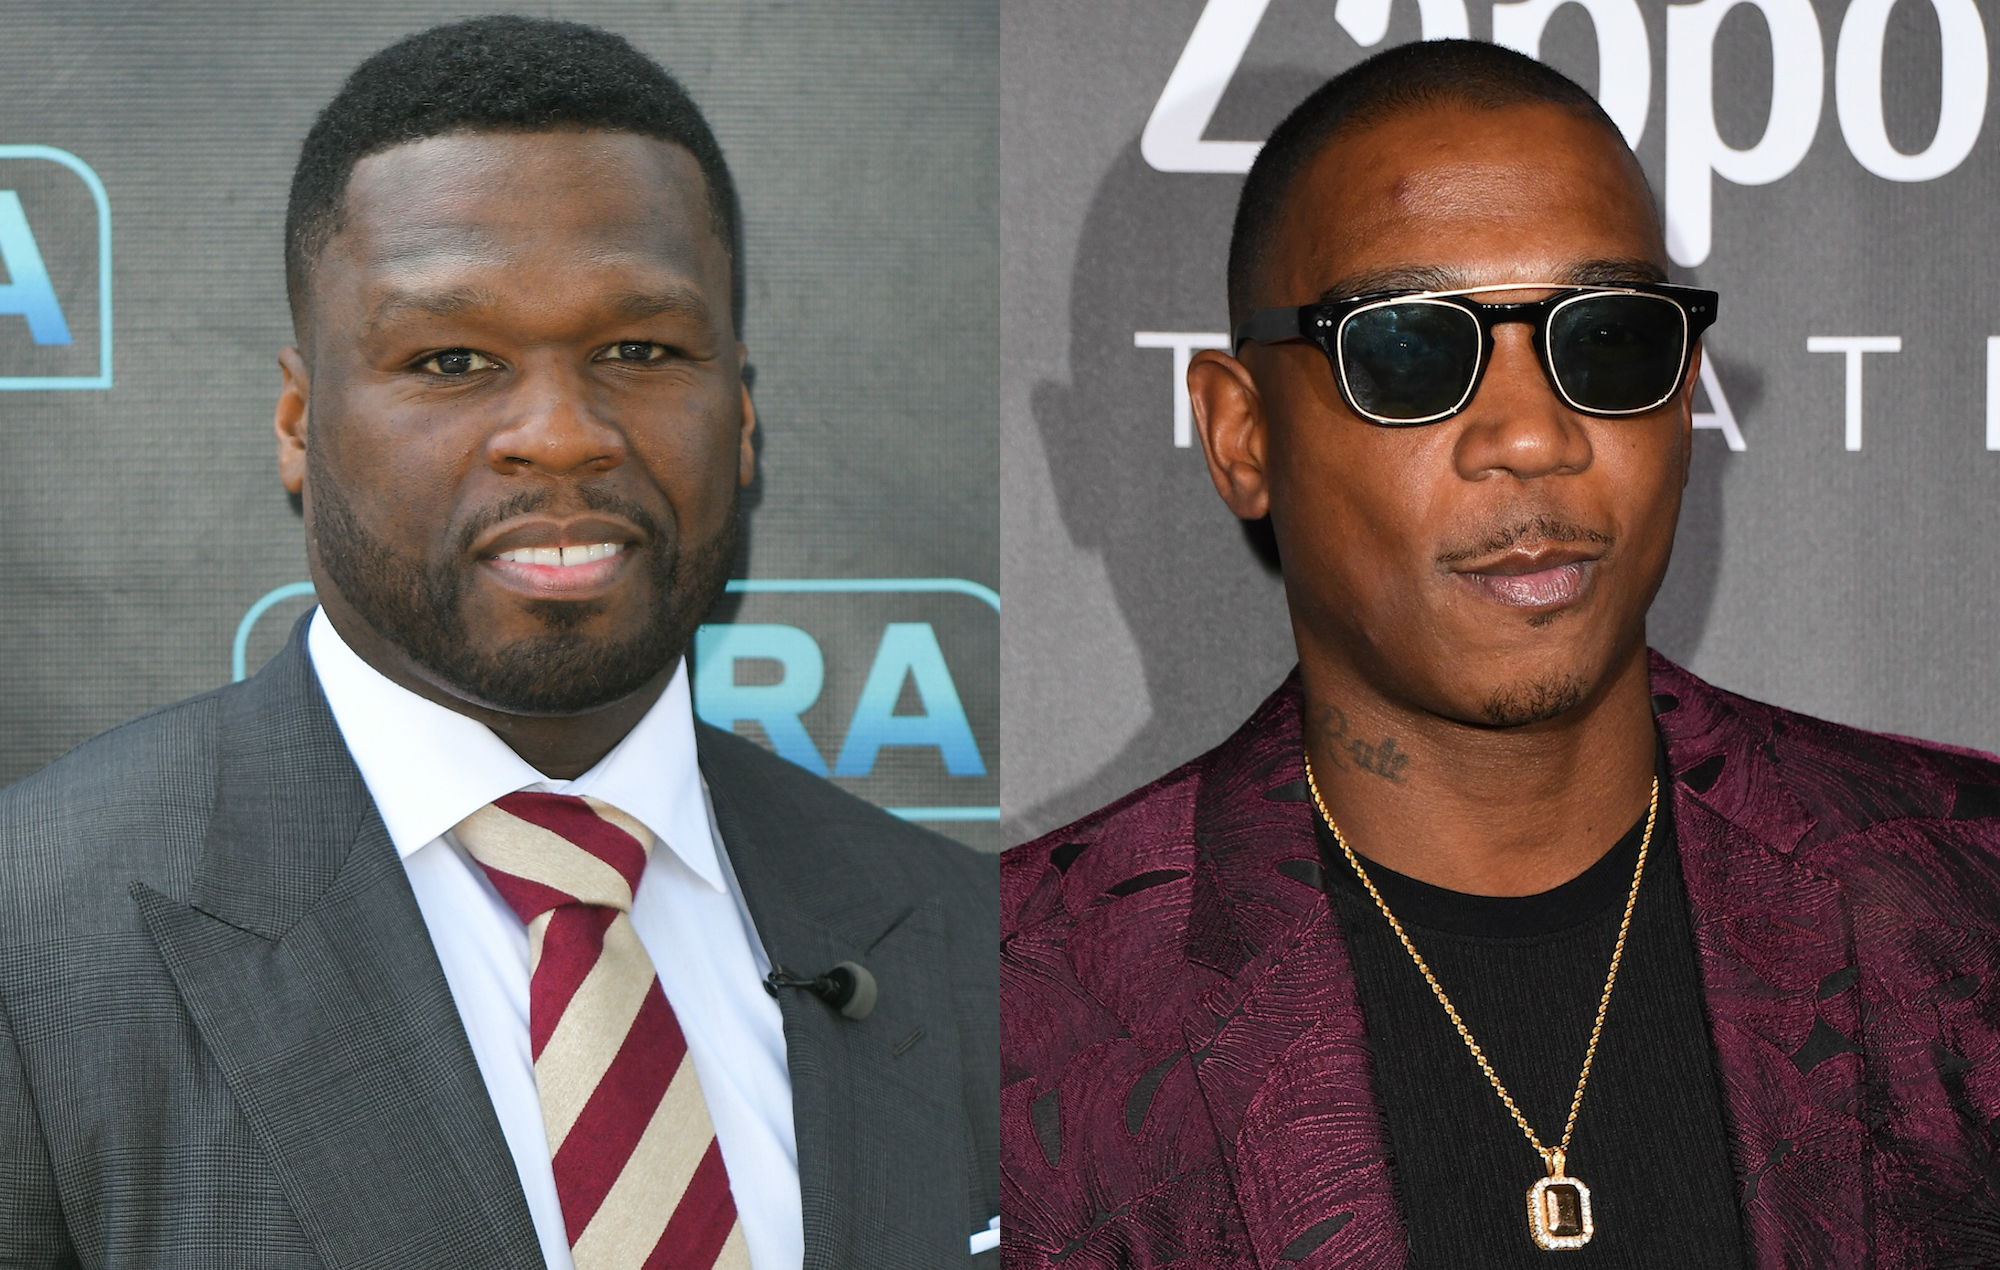 50 Cent says Ja Rule feud won't end until 'one of us is gone'